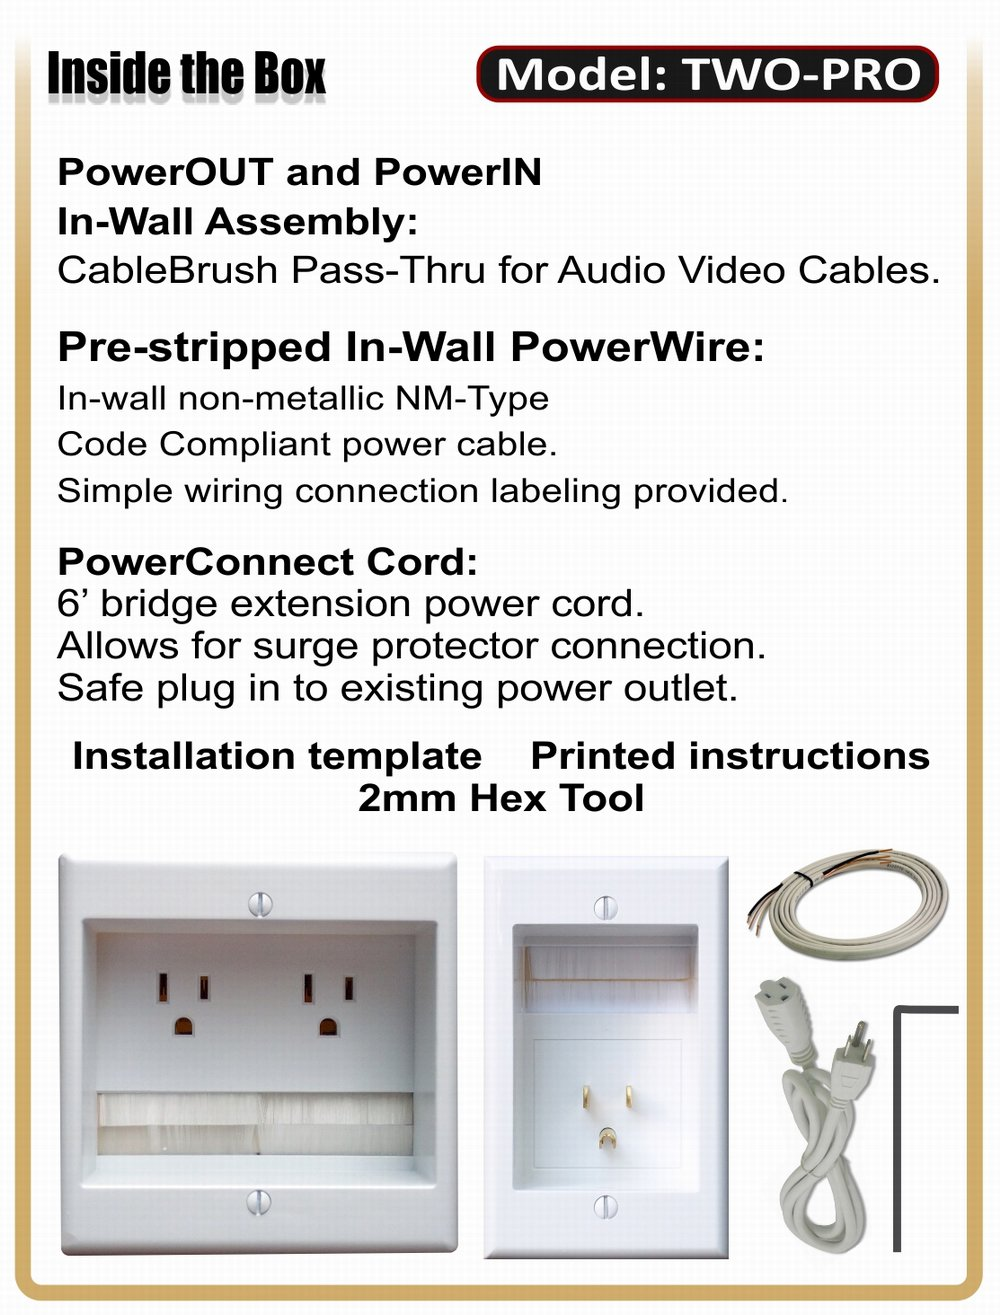 Powerbridge Two Pro 6 Dual Power Outlet Professional Grade Recessed Electrical Wiring In Wall Cable Management System For Mounted Flat Screen Led Lcd And Plasma Tvs